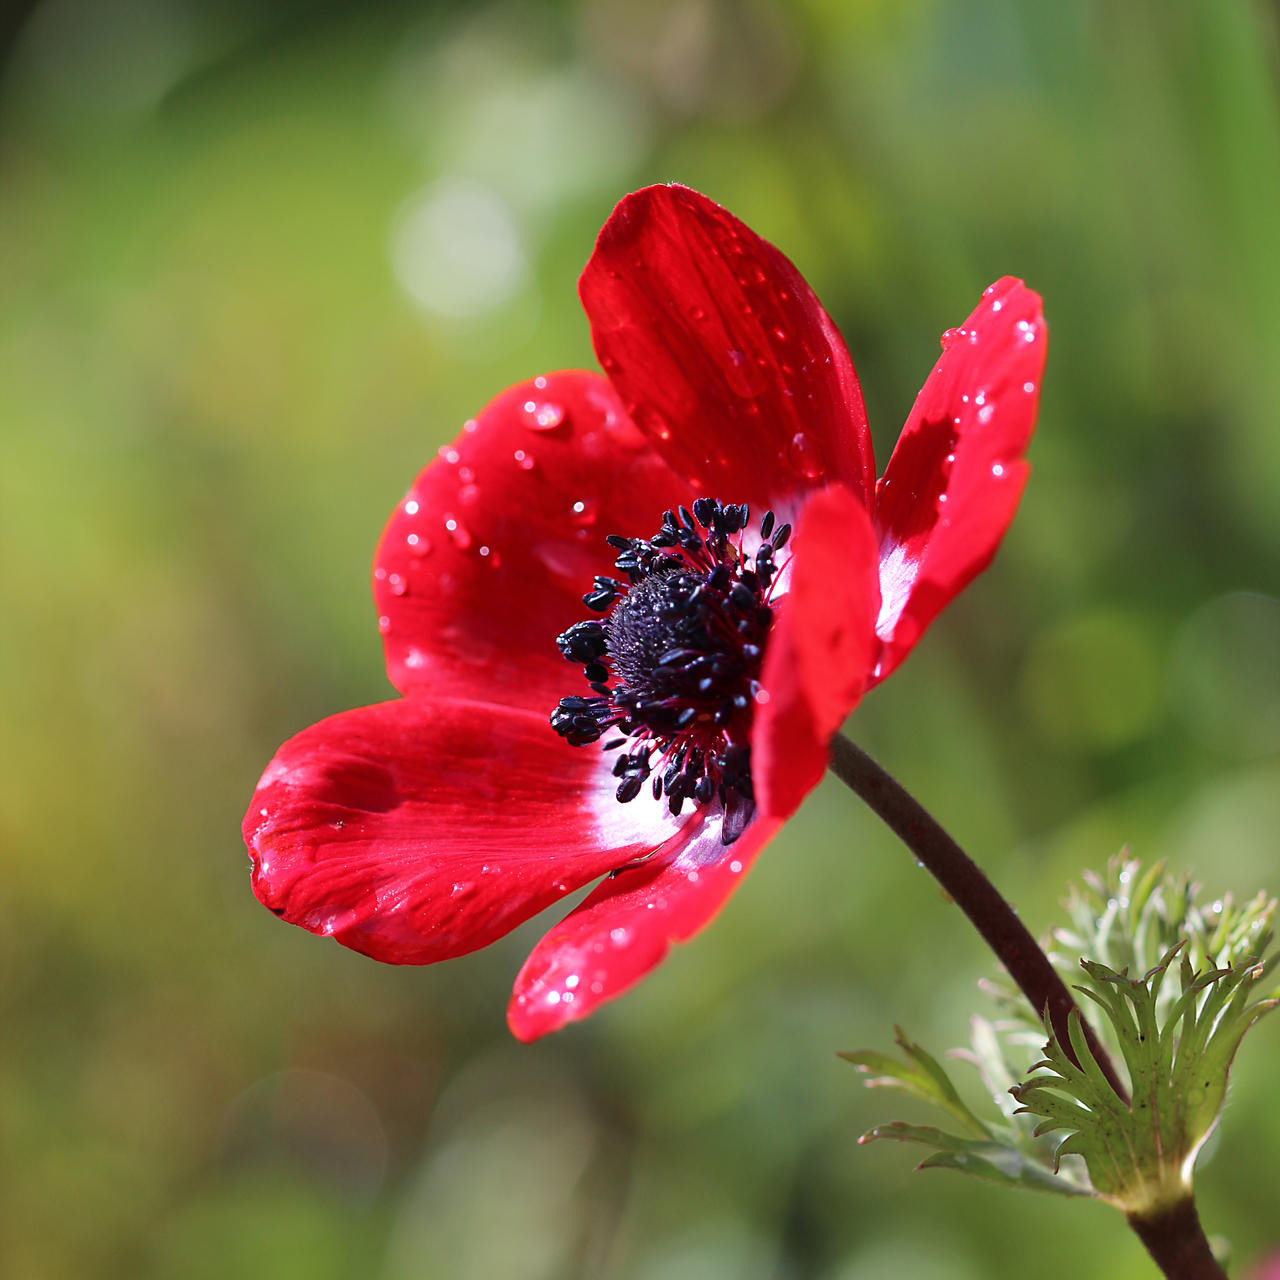 Red anemone 01